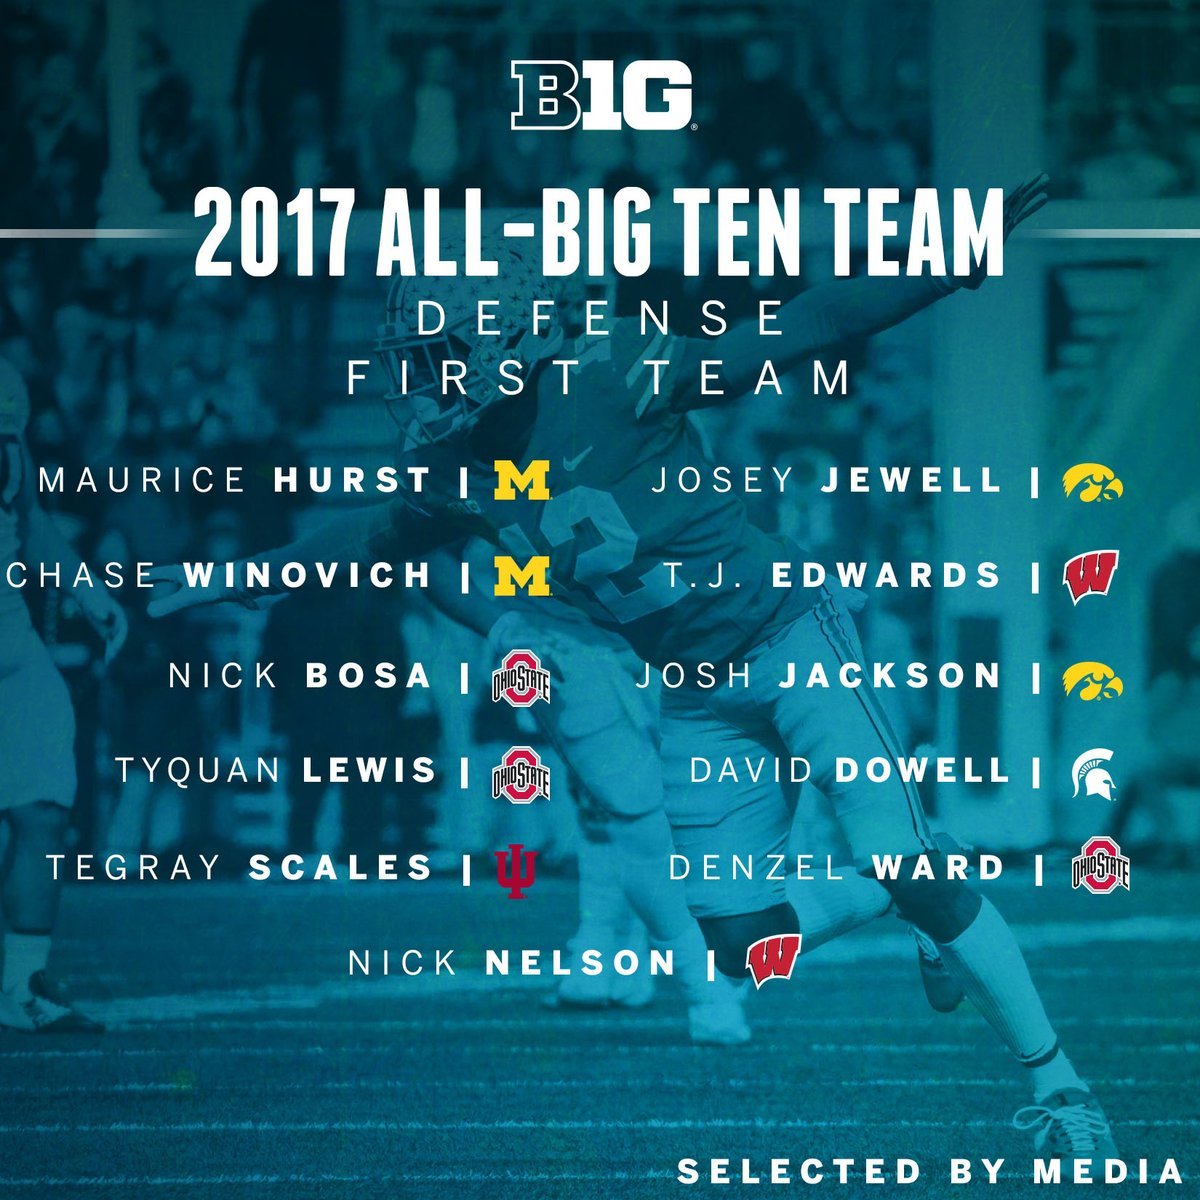 All-Big Ten Defense First Team, as selected by media